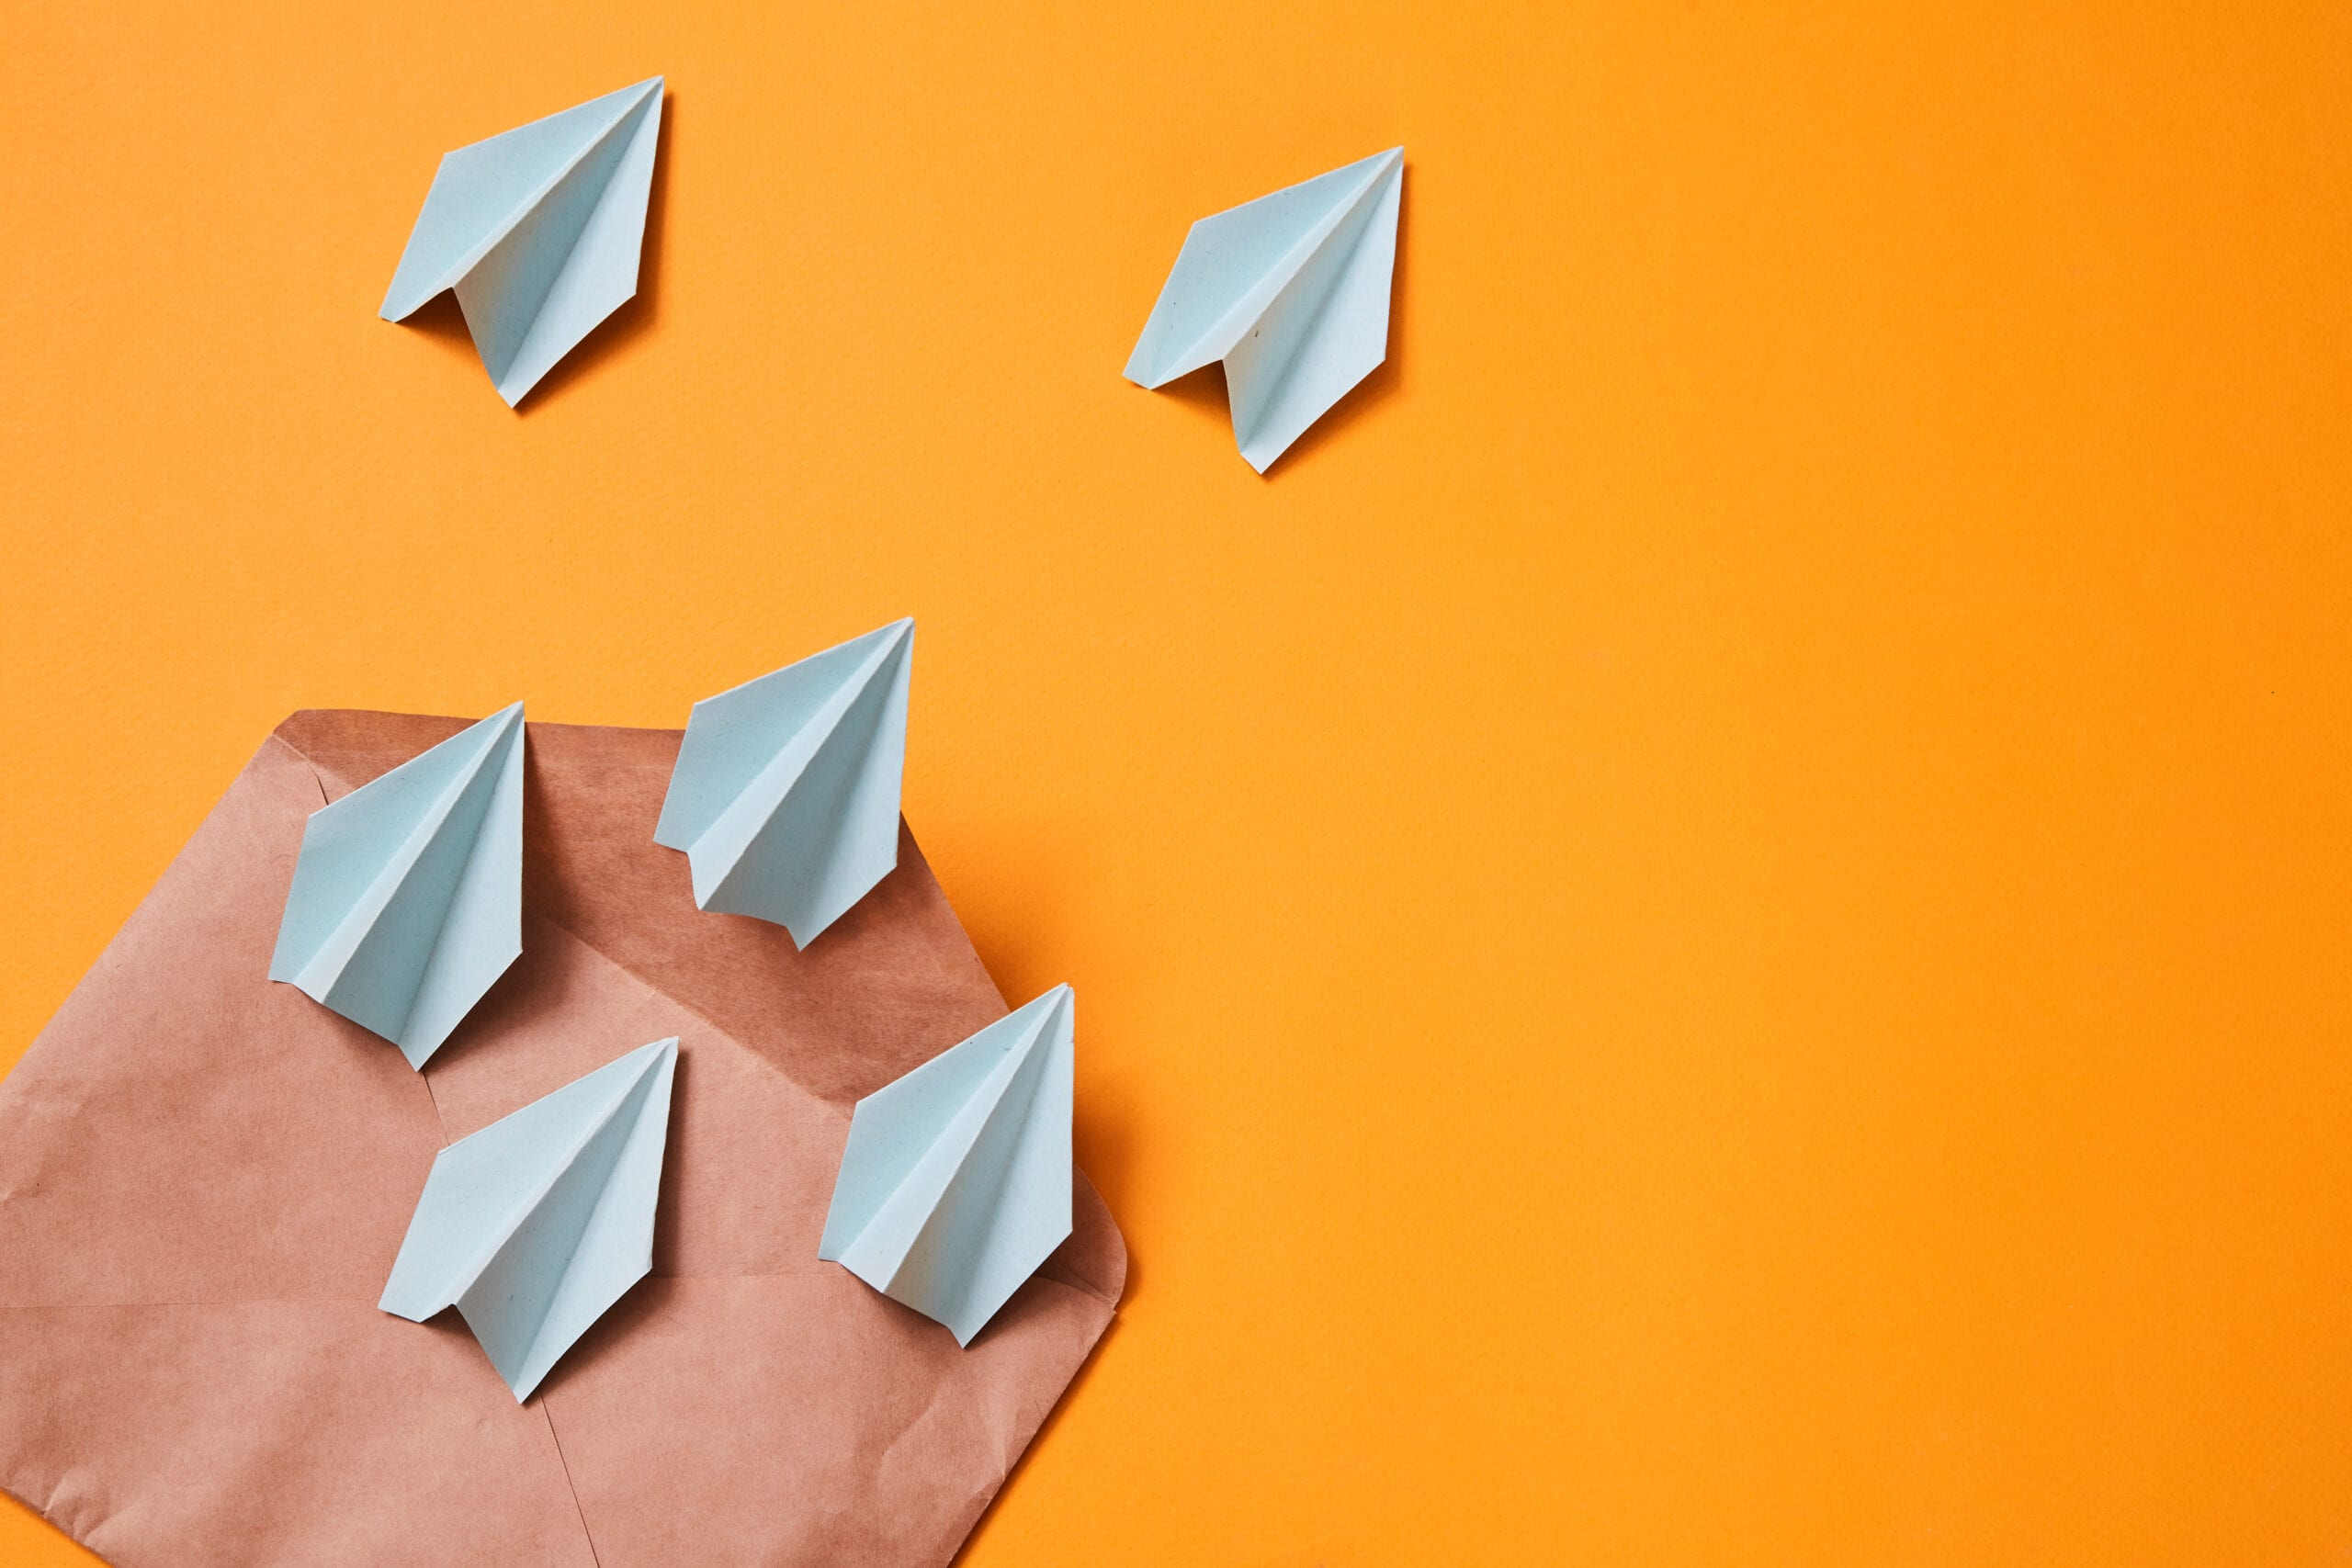 Concept for sending e-mails and e-commerce business. Email marketing. Paper planes flying out of the envelope.